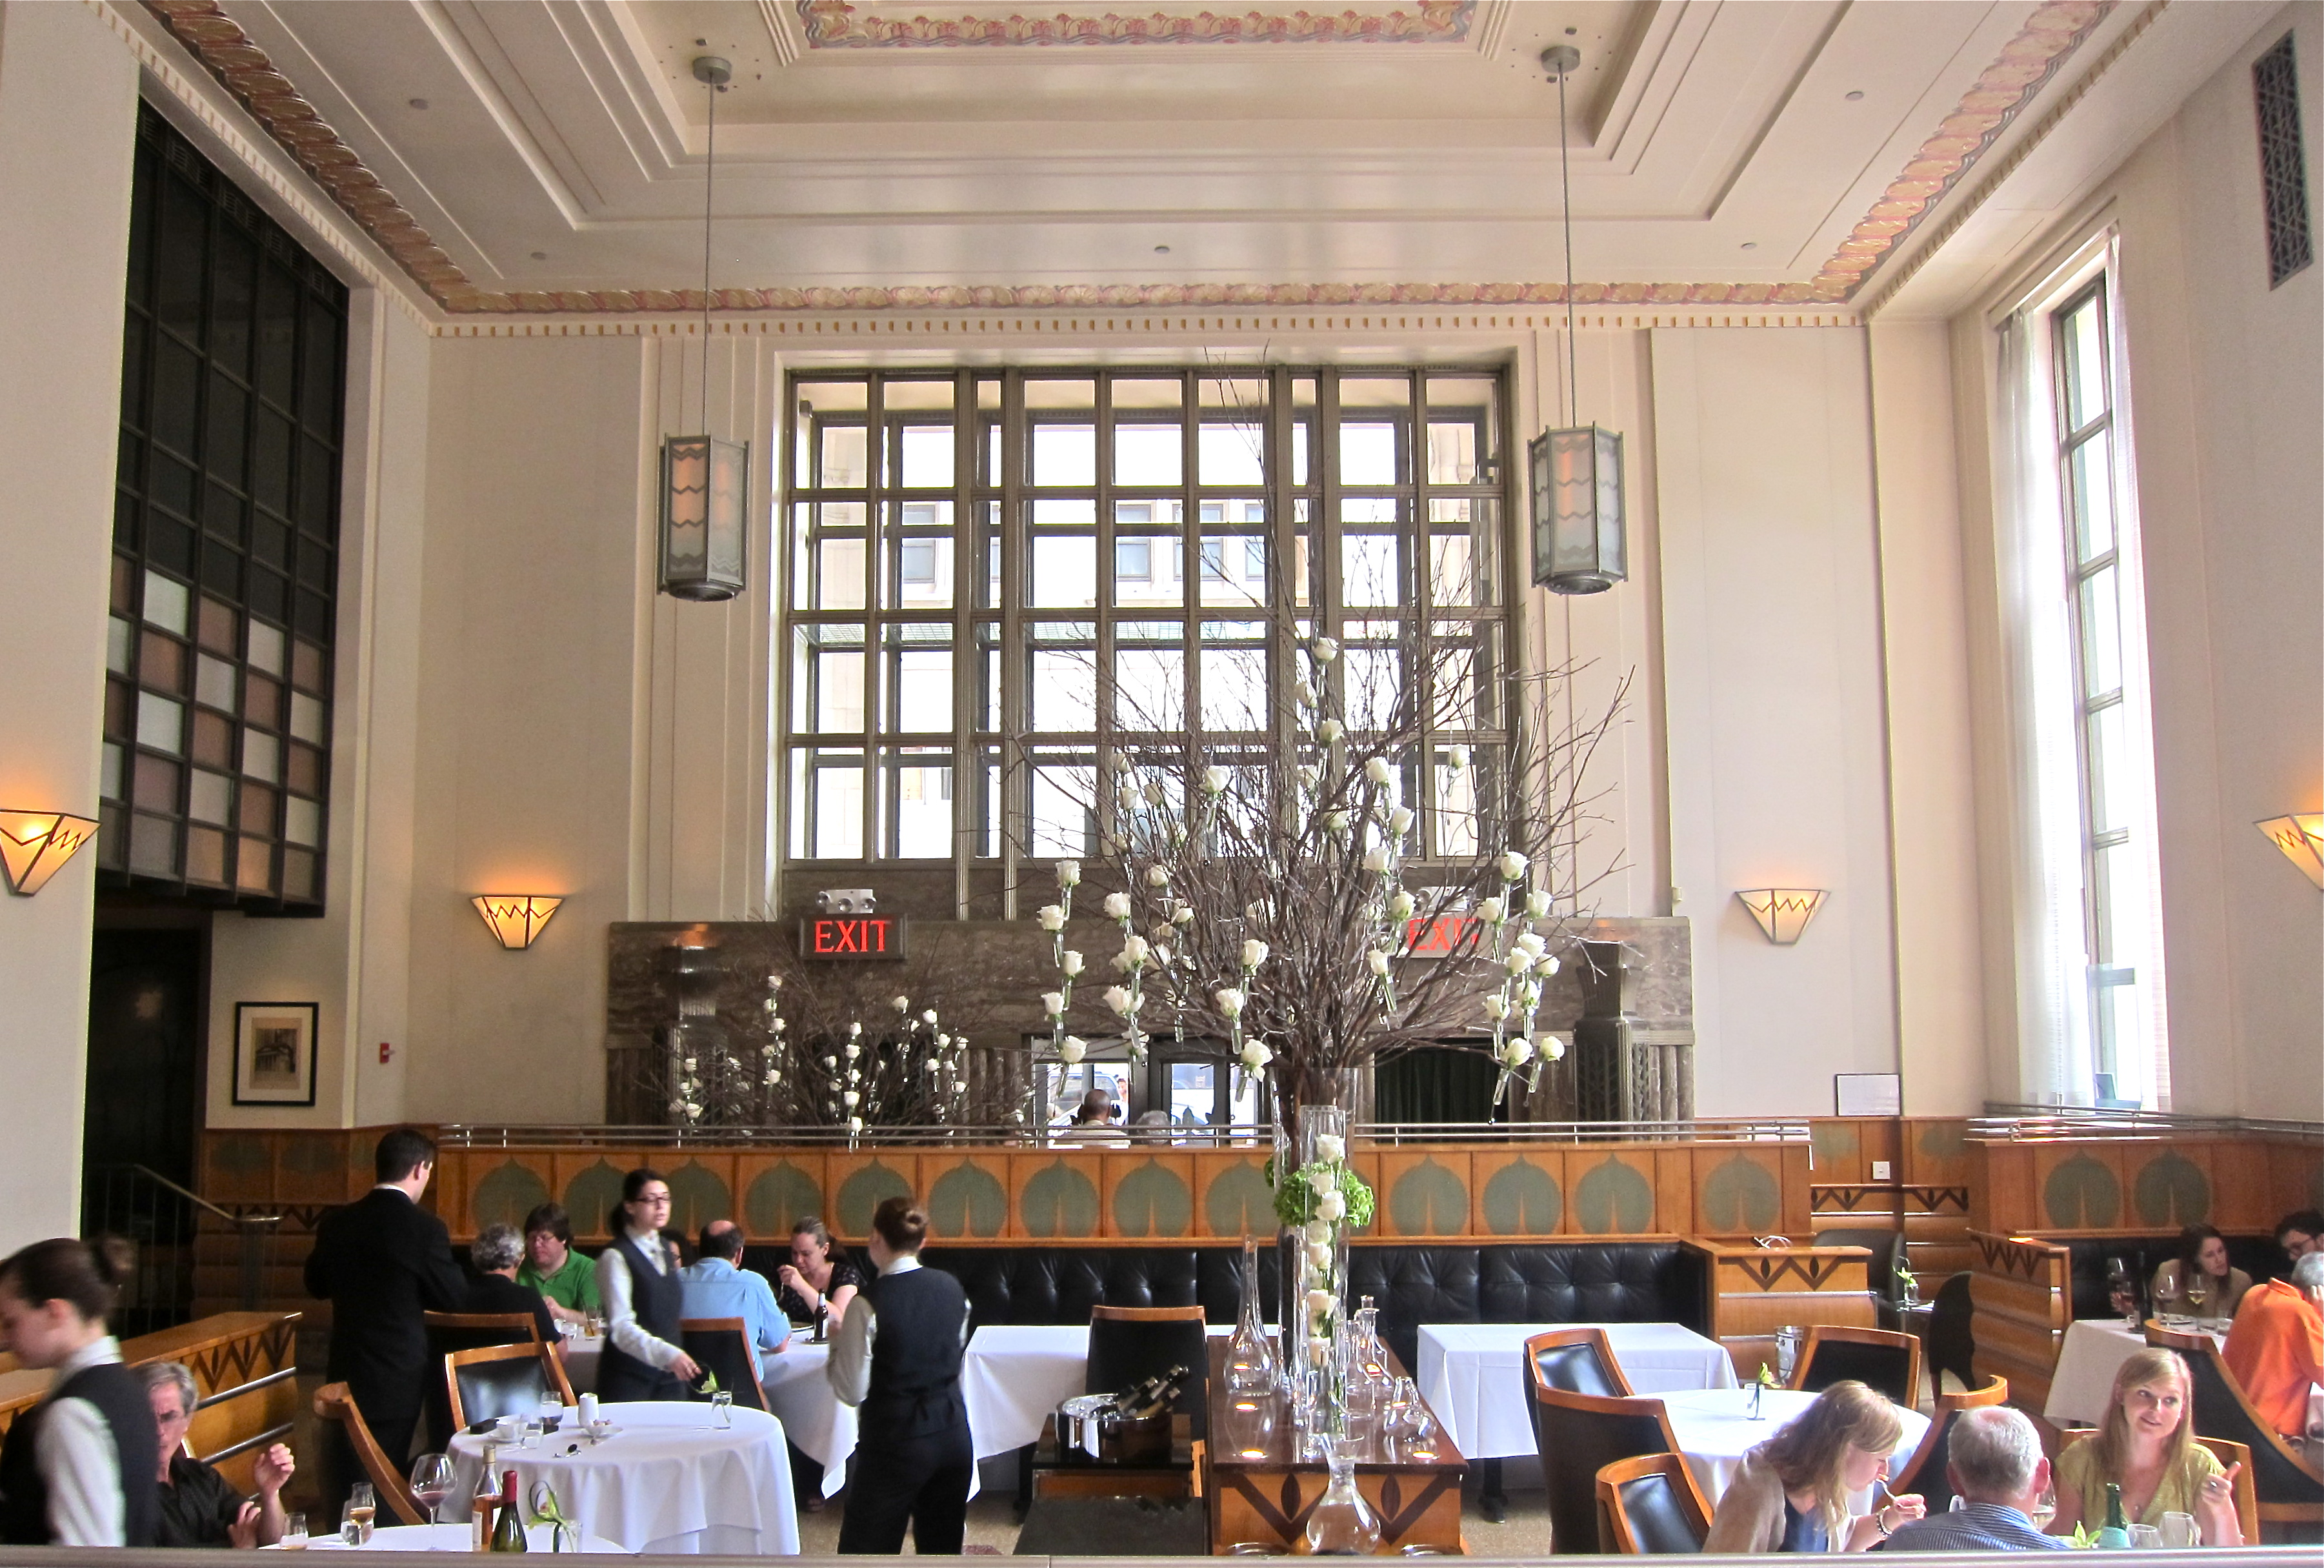 Eleven madison park s sweeping art deco dining room for Deco restaurant